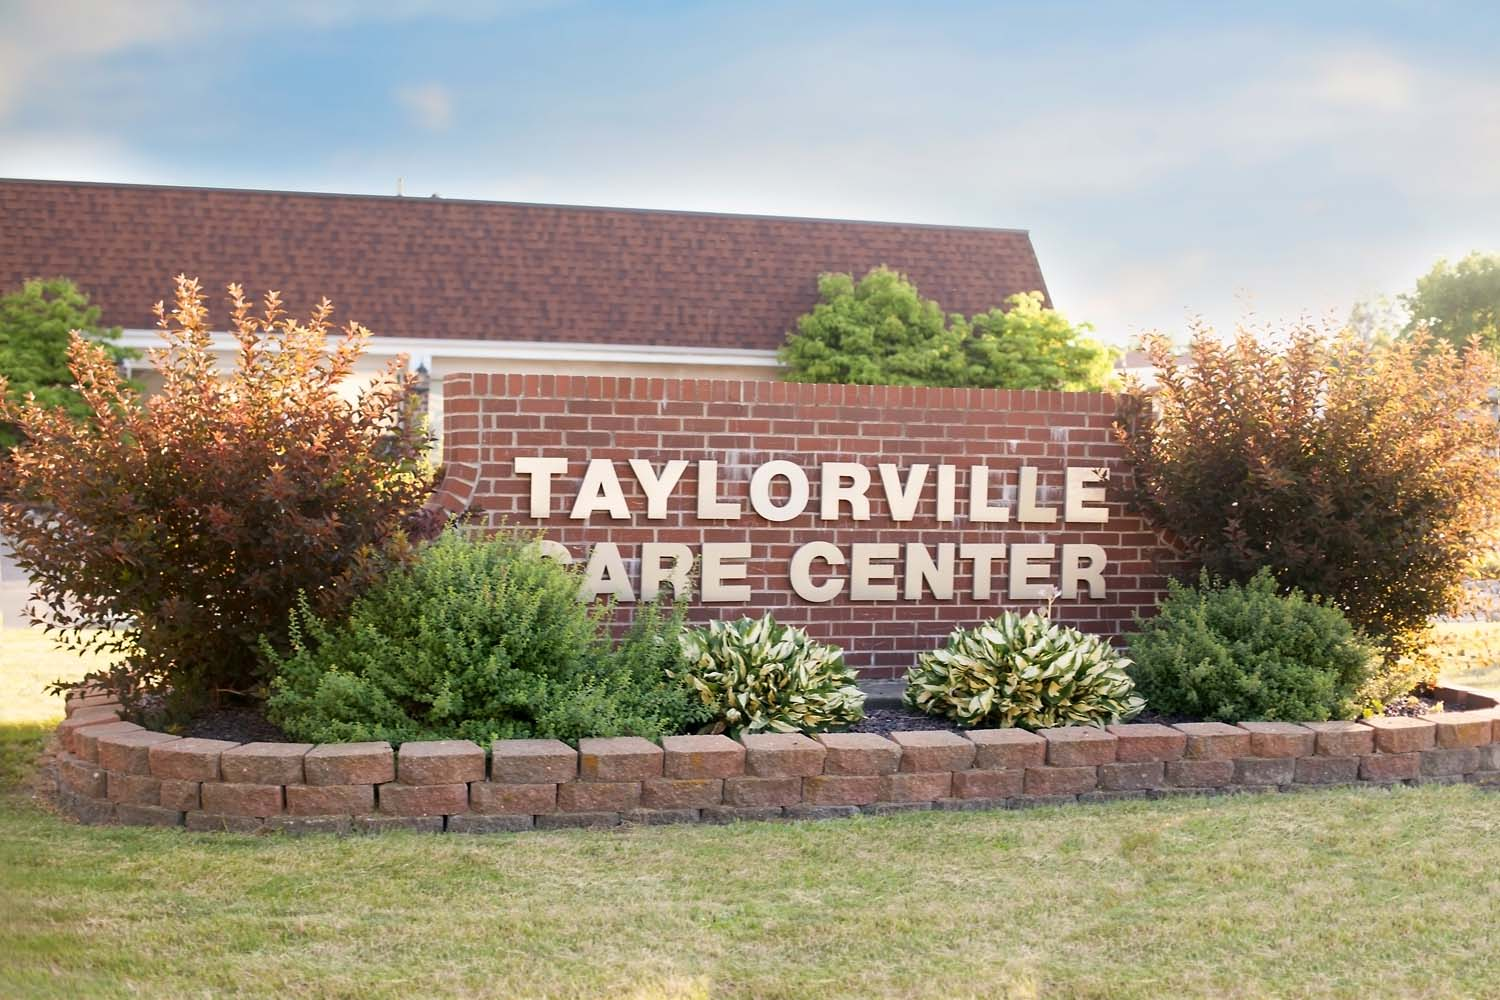 Taylorville Care Center